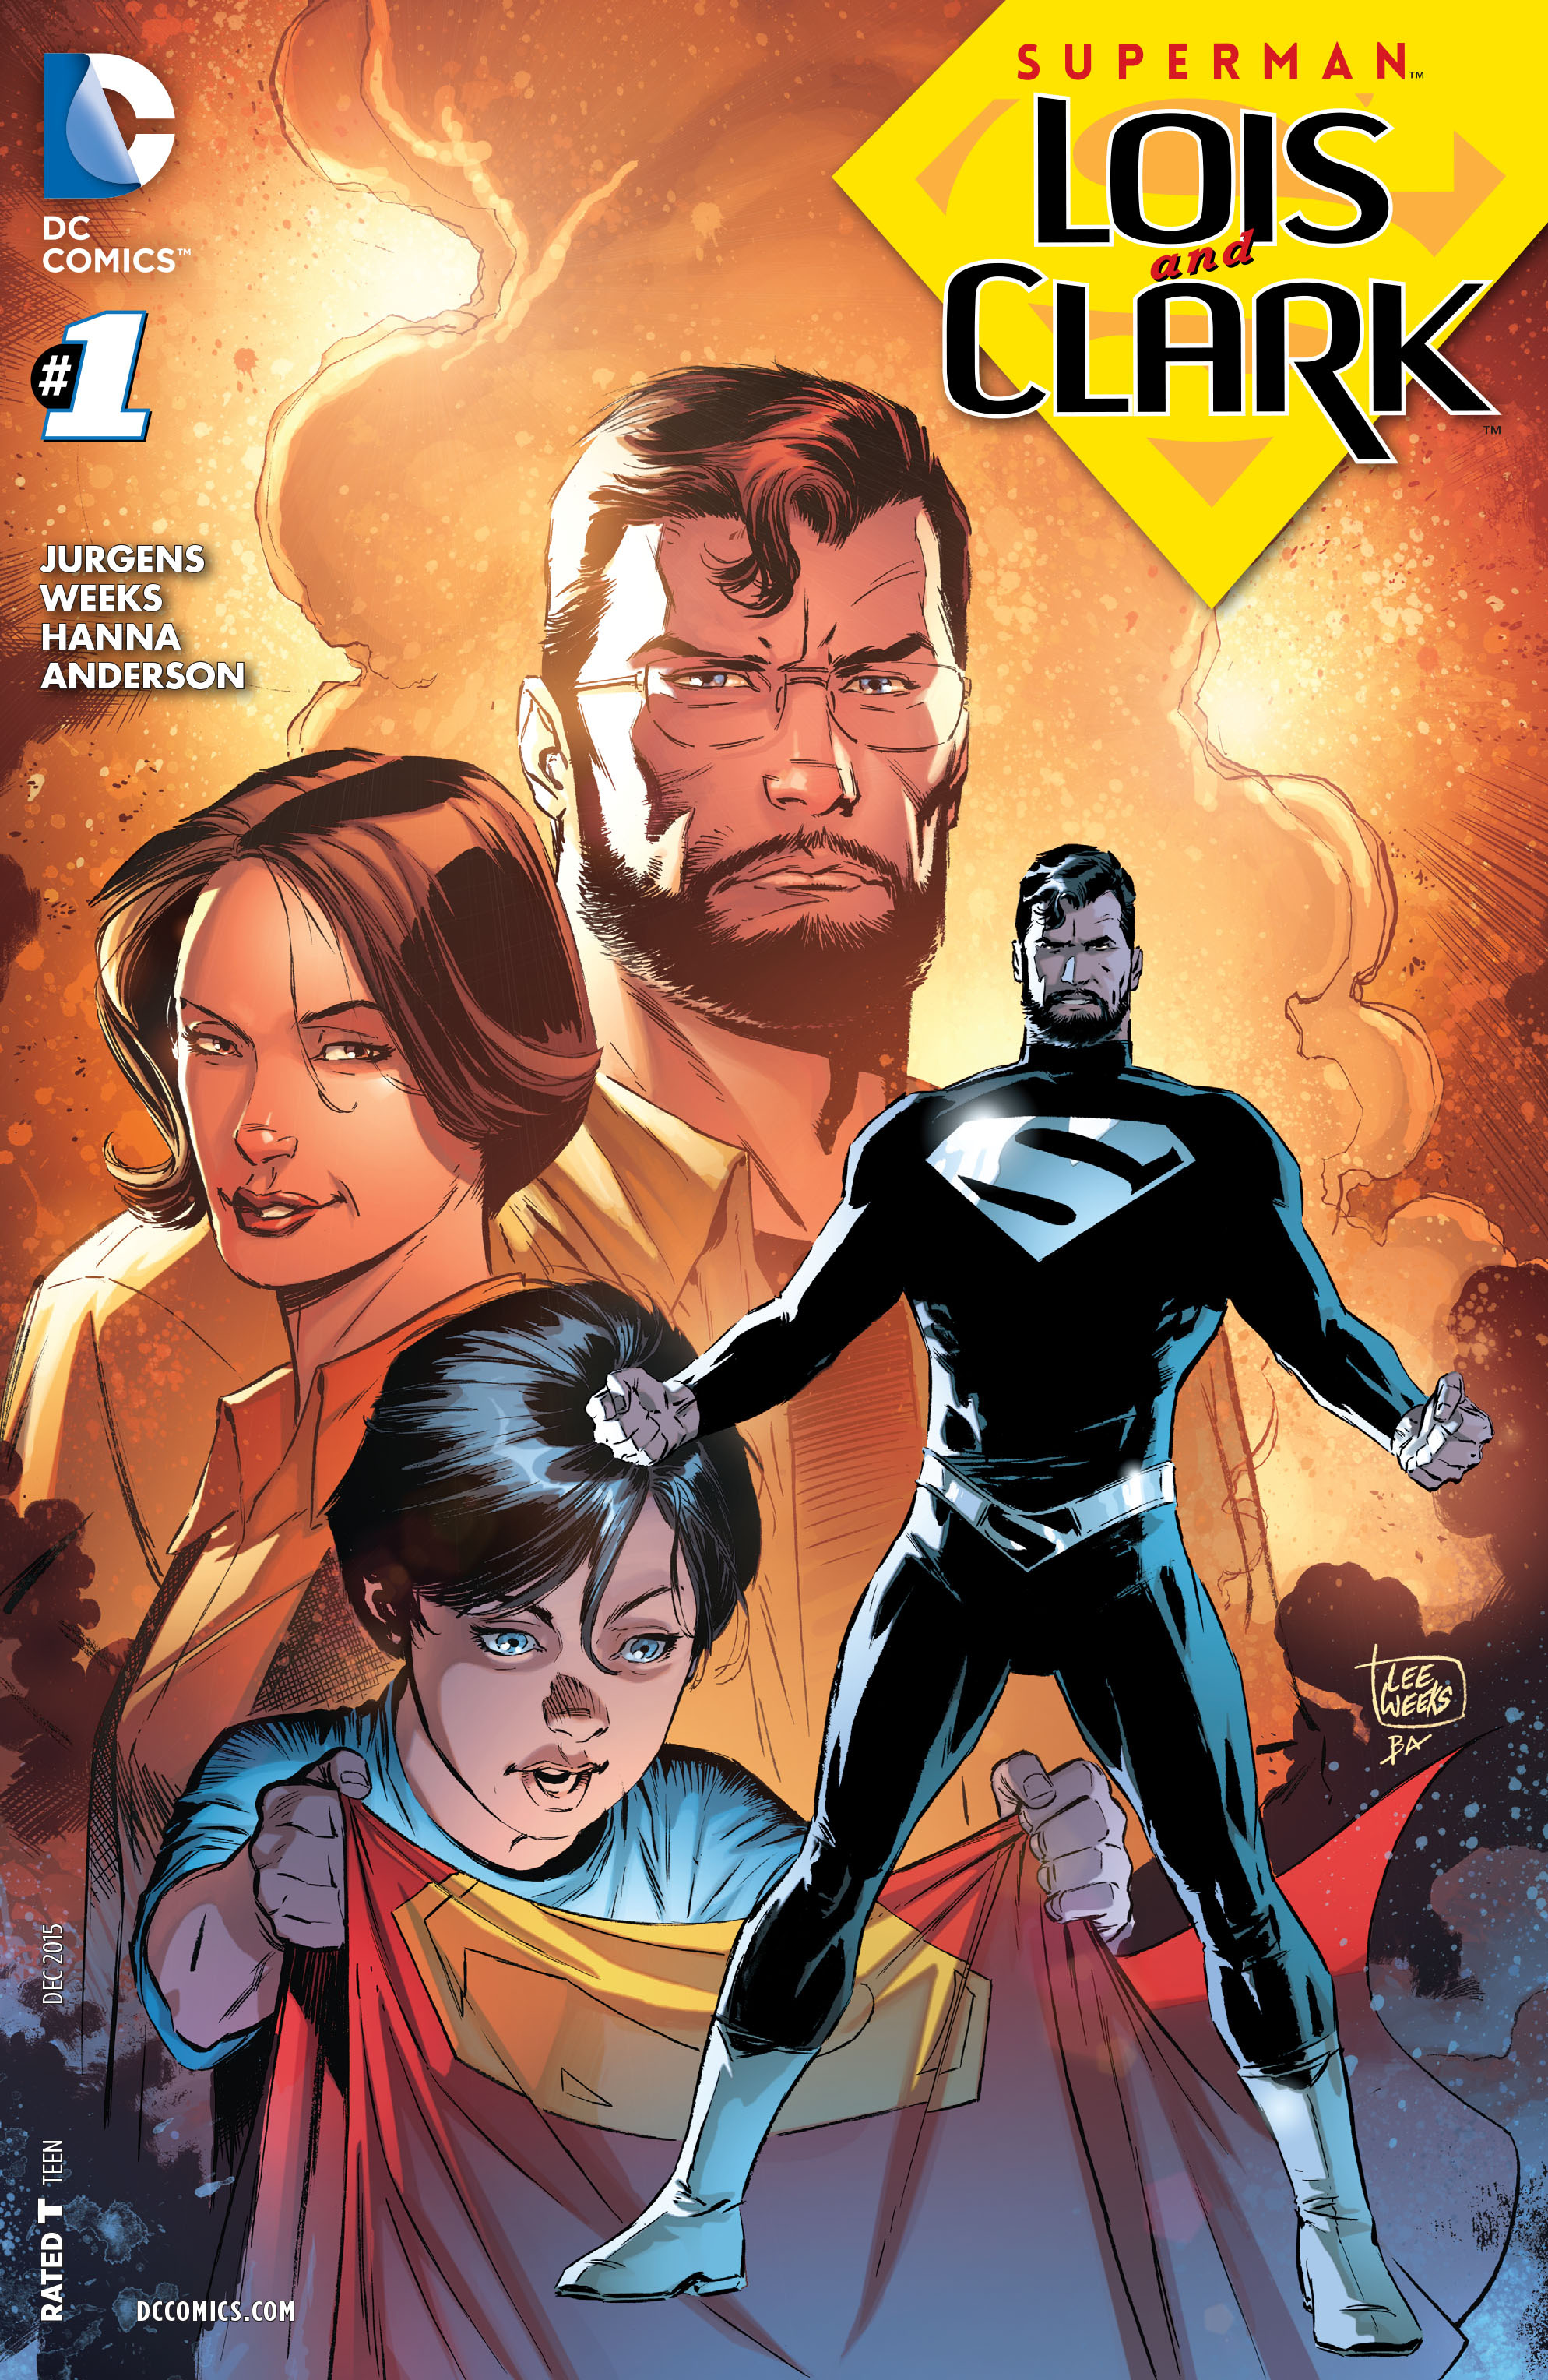 Superman Lois and Clark #1 spoilers review 0